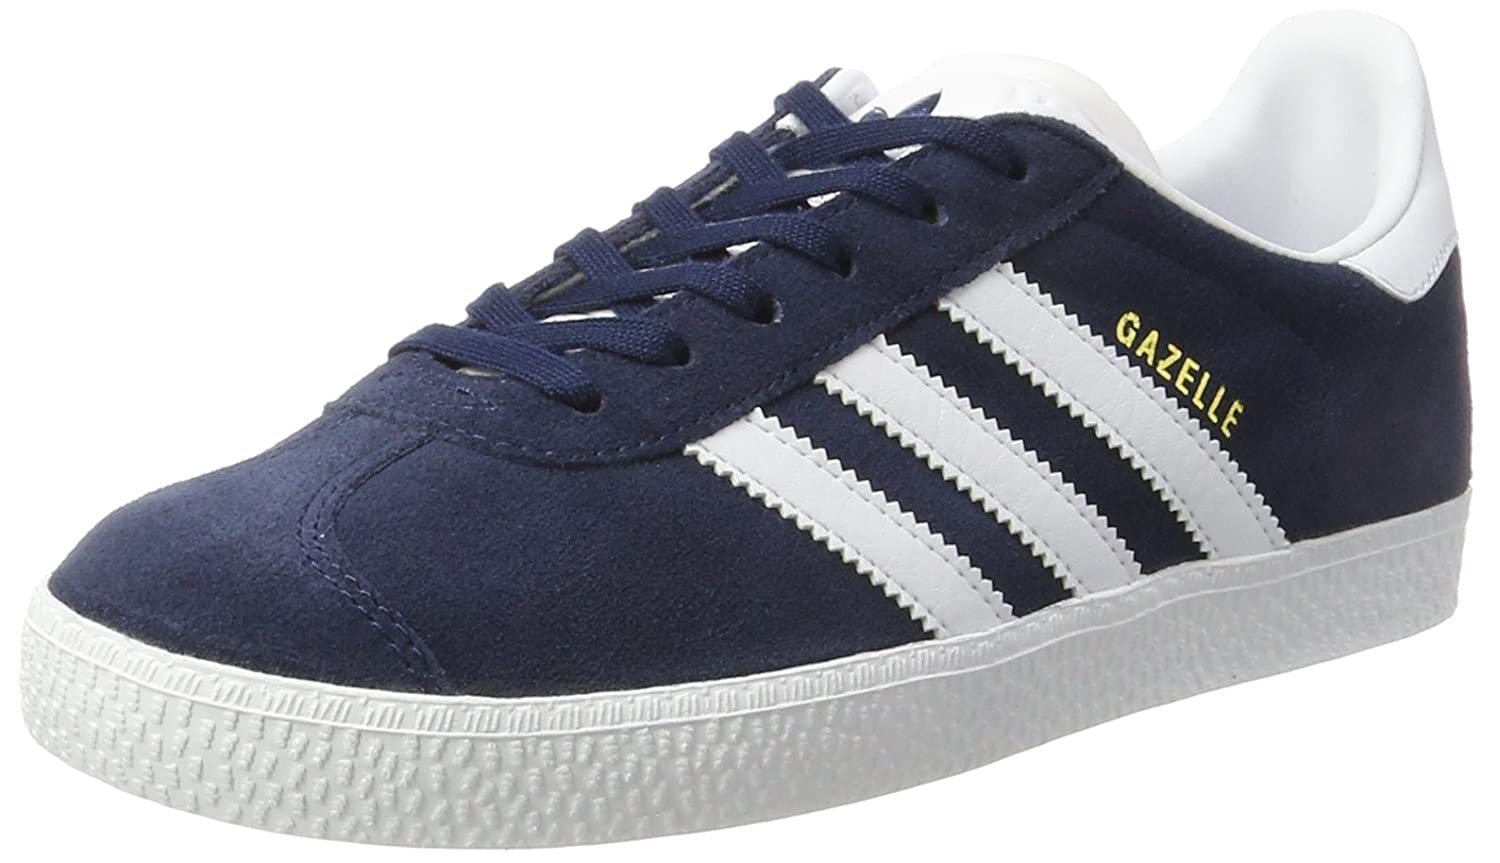 adidas Gazelle Unisex Kids Low-Top Sneakers